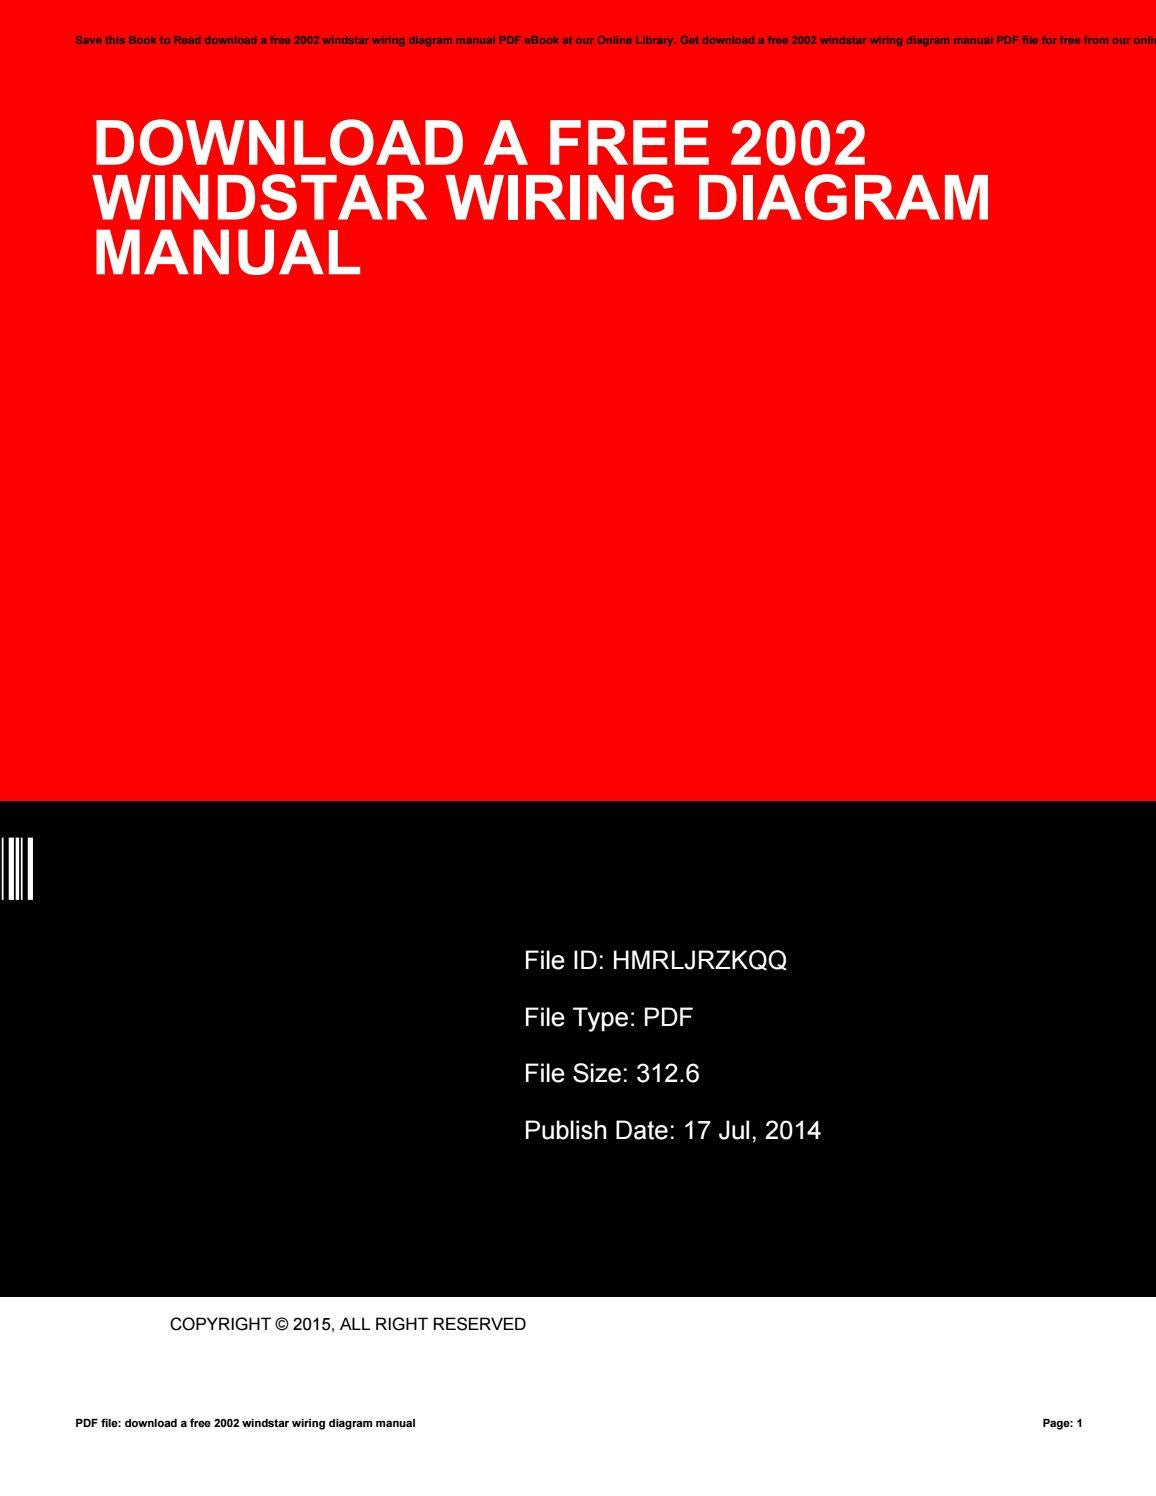 Download A Free 2002 Windstar Wiring Diagram Manual By Jay